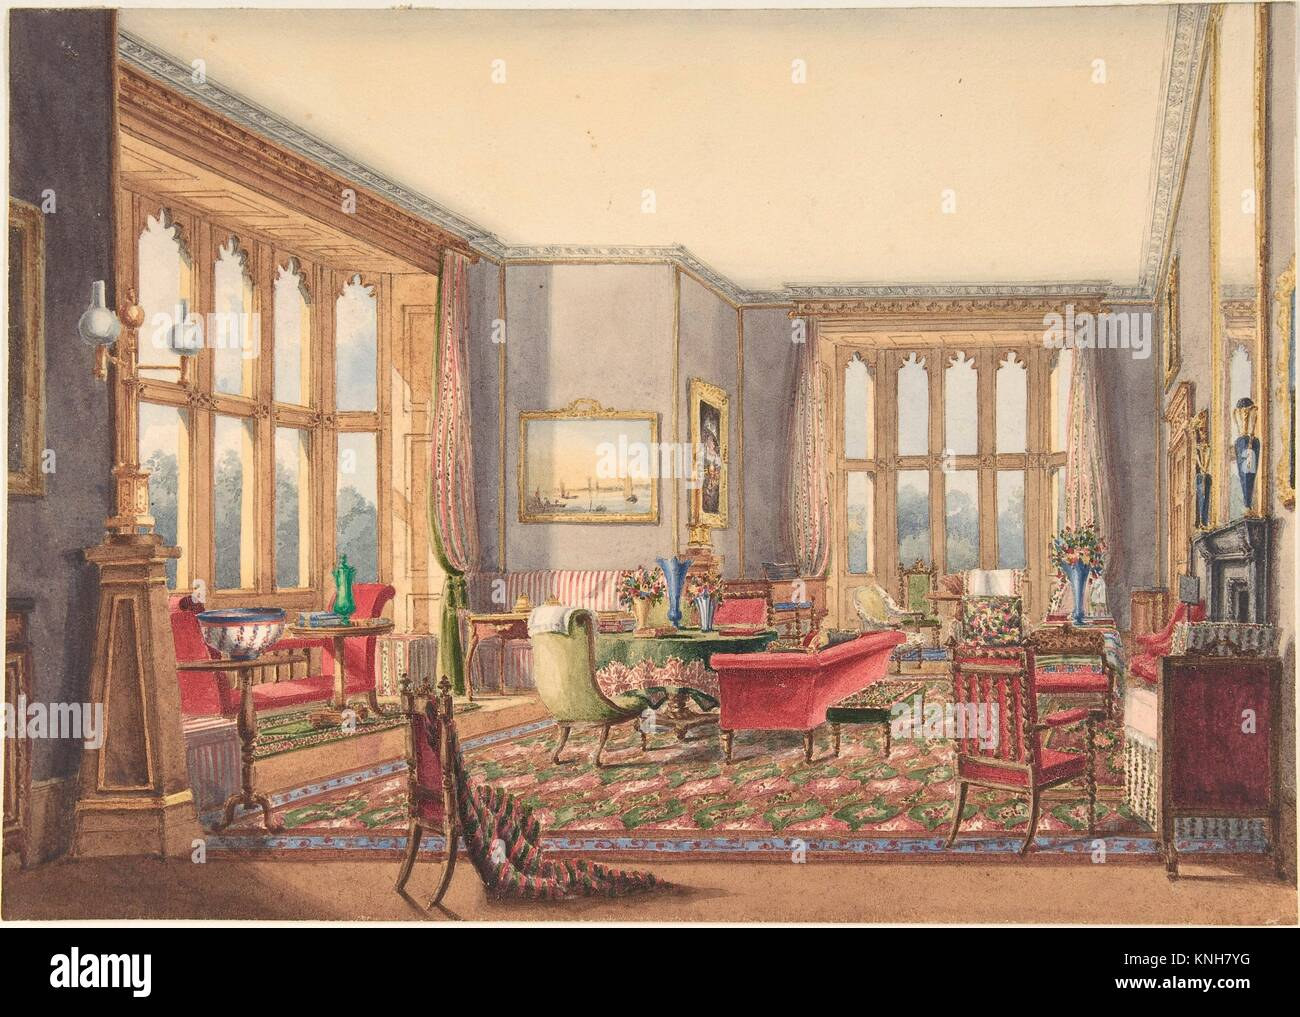 Drawing Room Guys Cliffe Warwickshire Artist Anonymous British 19th Century Date 1860 Medium Watercolor Dimensions Sheet 8 3 X 11 4